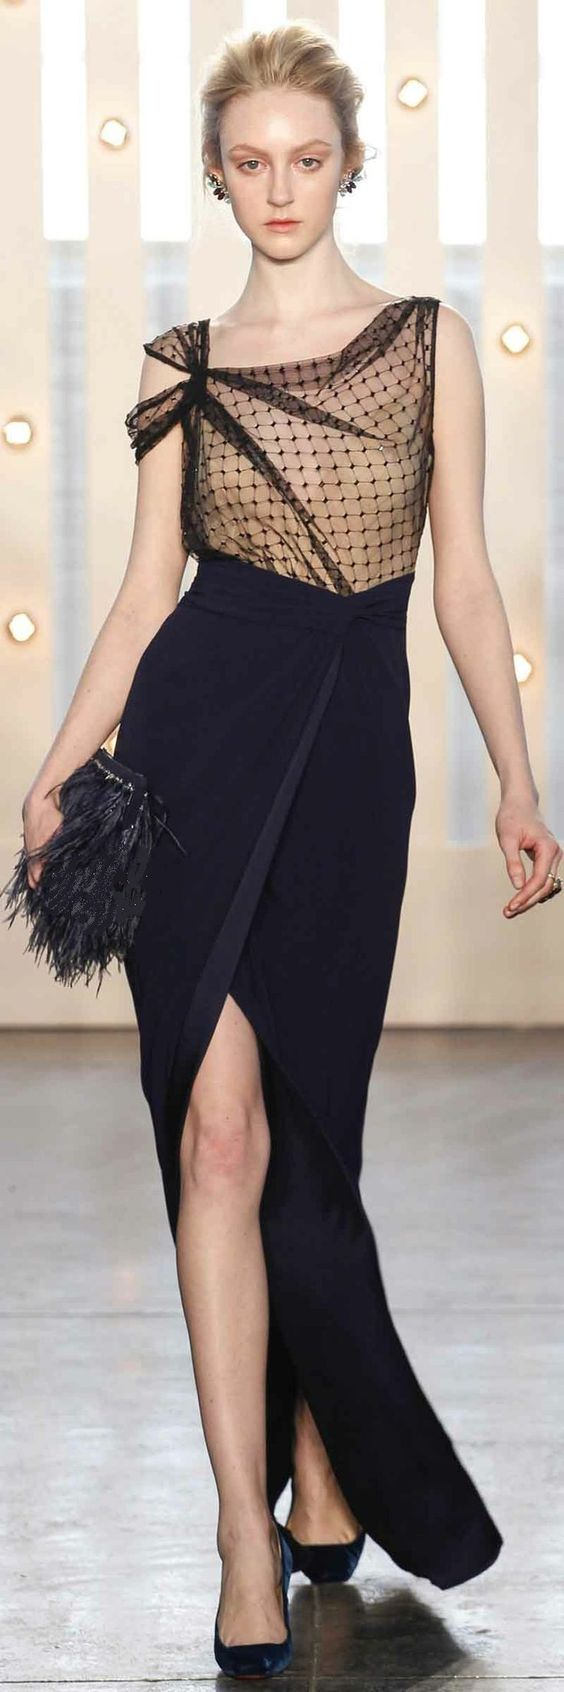 I really like the funkiness and yet remaining class of this number! I adore the nude and black sheer mesh torso with split sleeve, and the navy split skirt. Very fun yet elegant.